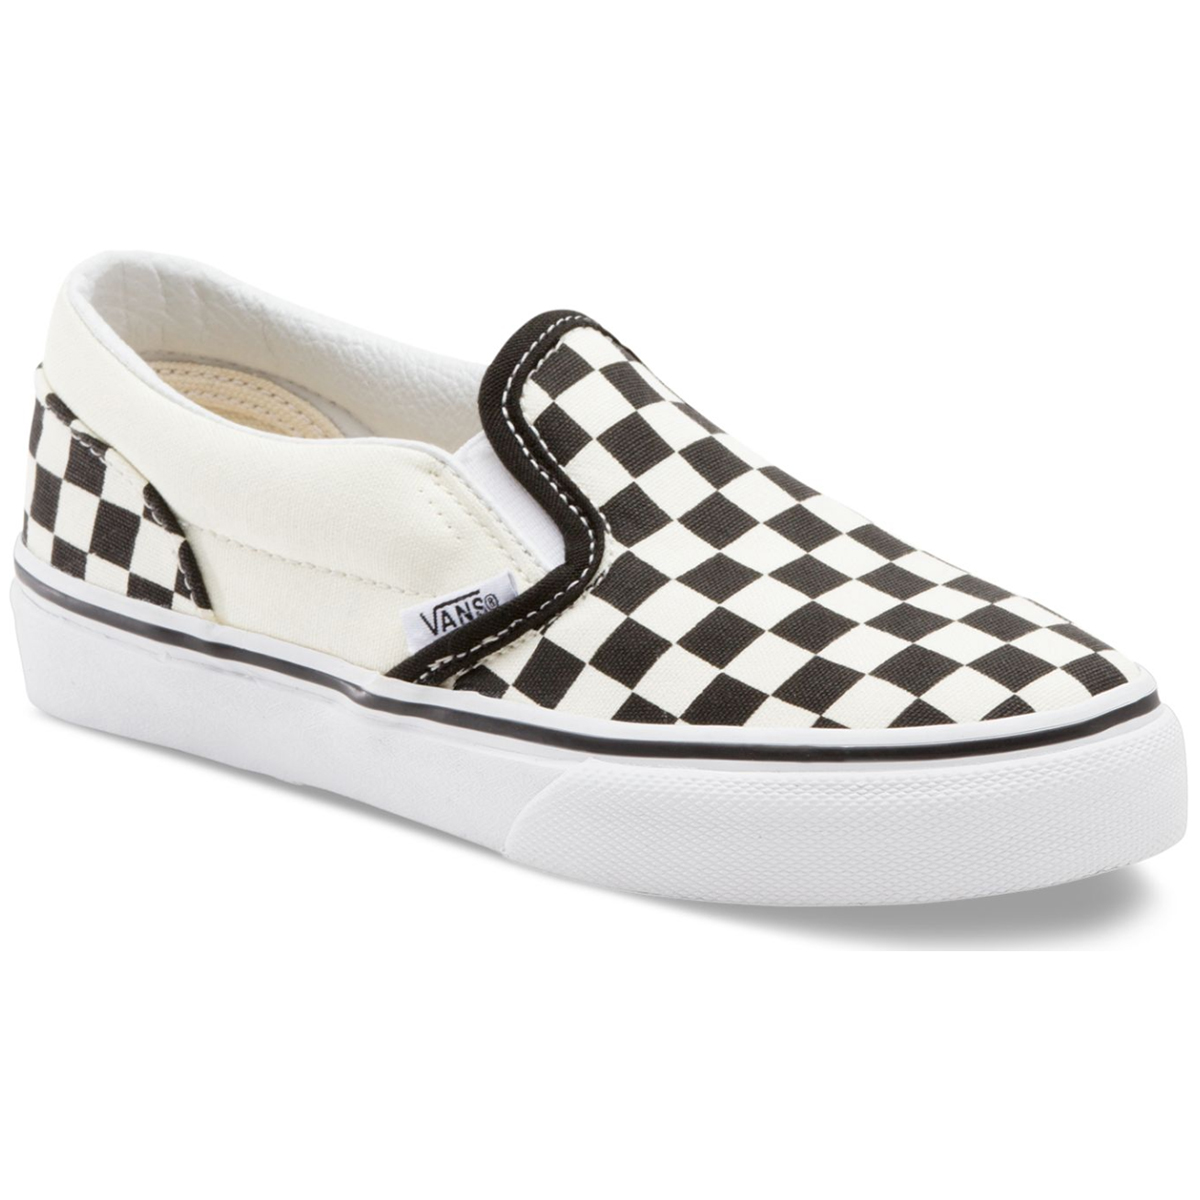 Vans Kids' Checkerboard Classic Slip-On Casual Shoes - Black, 2